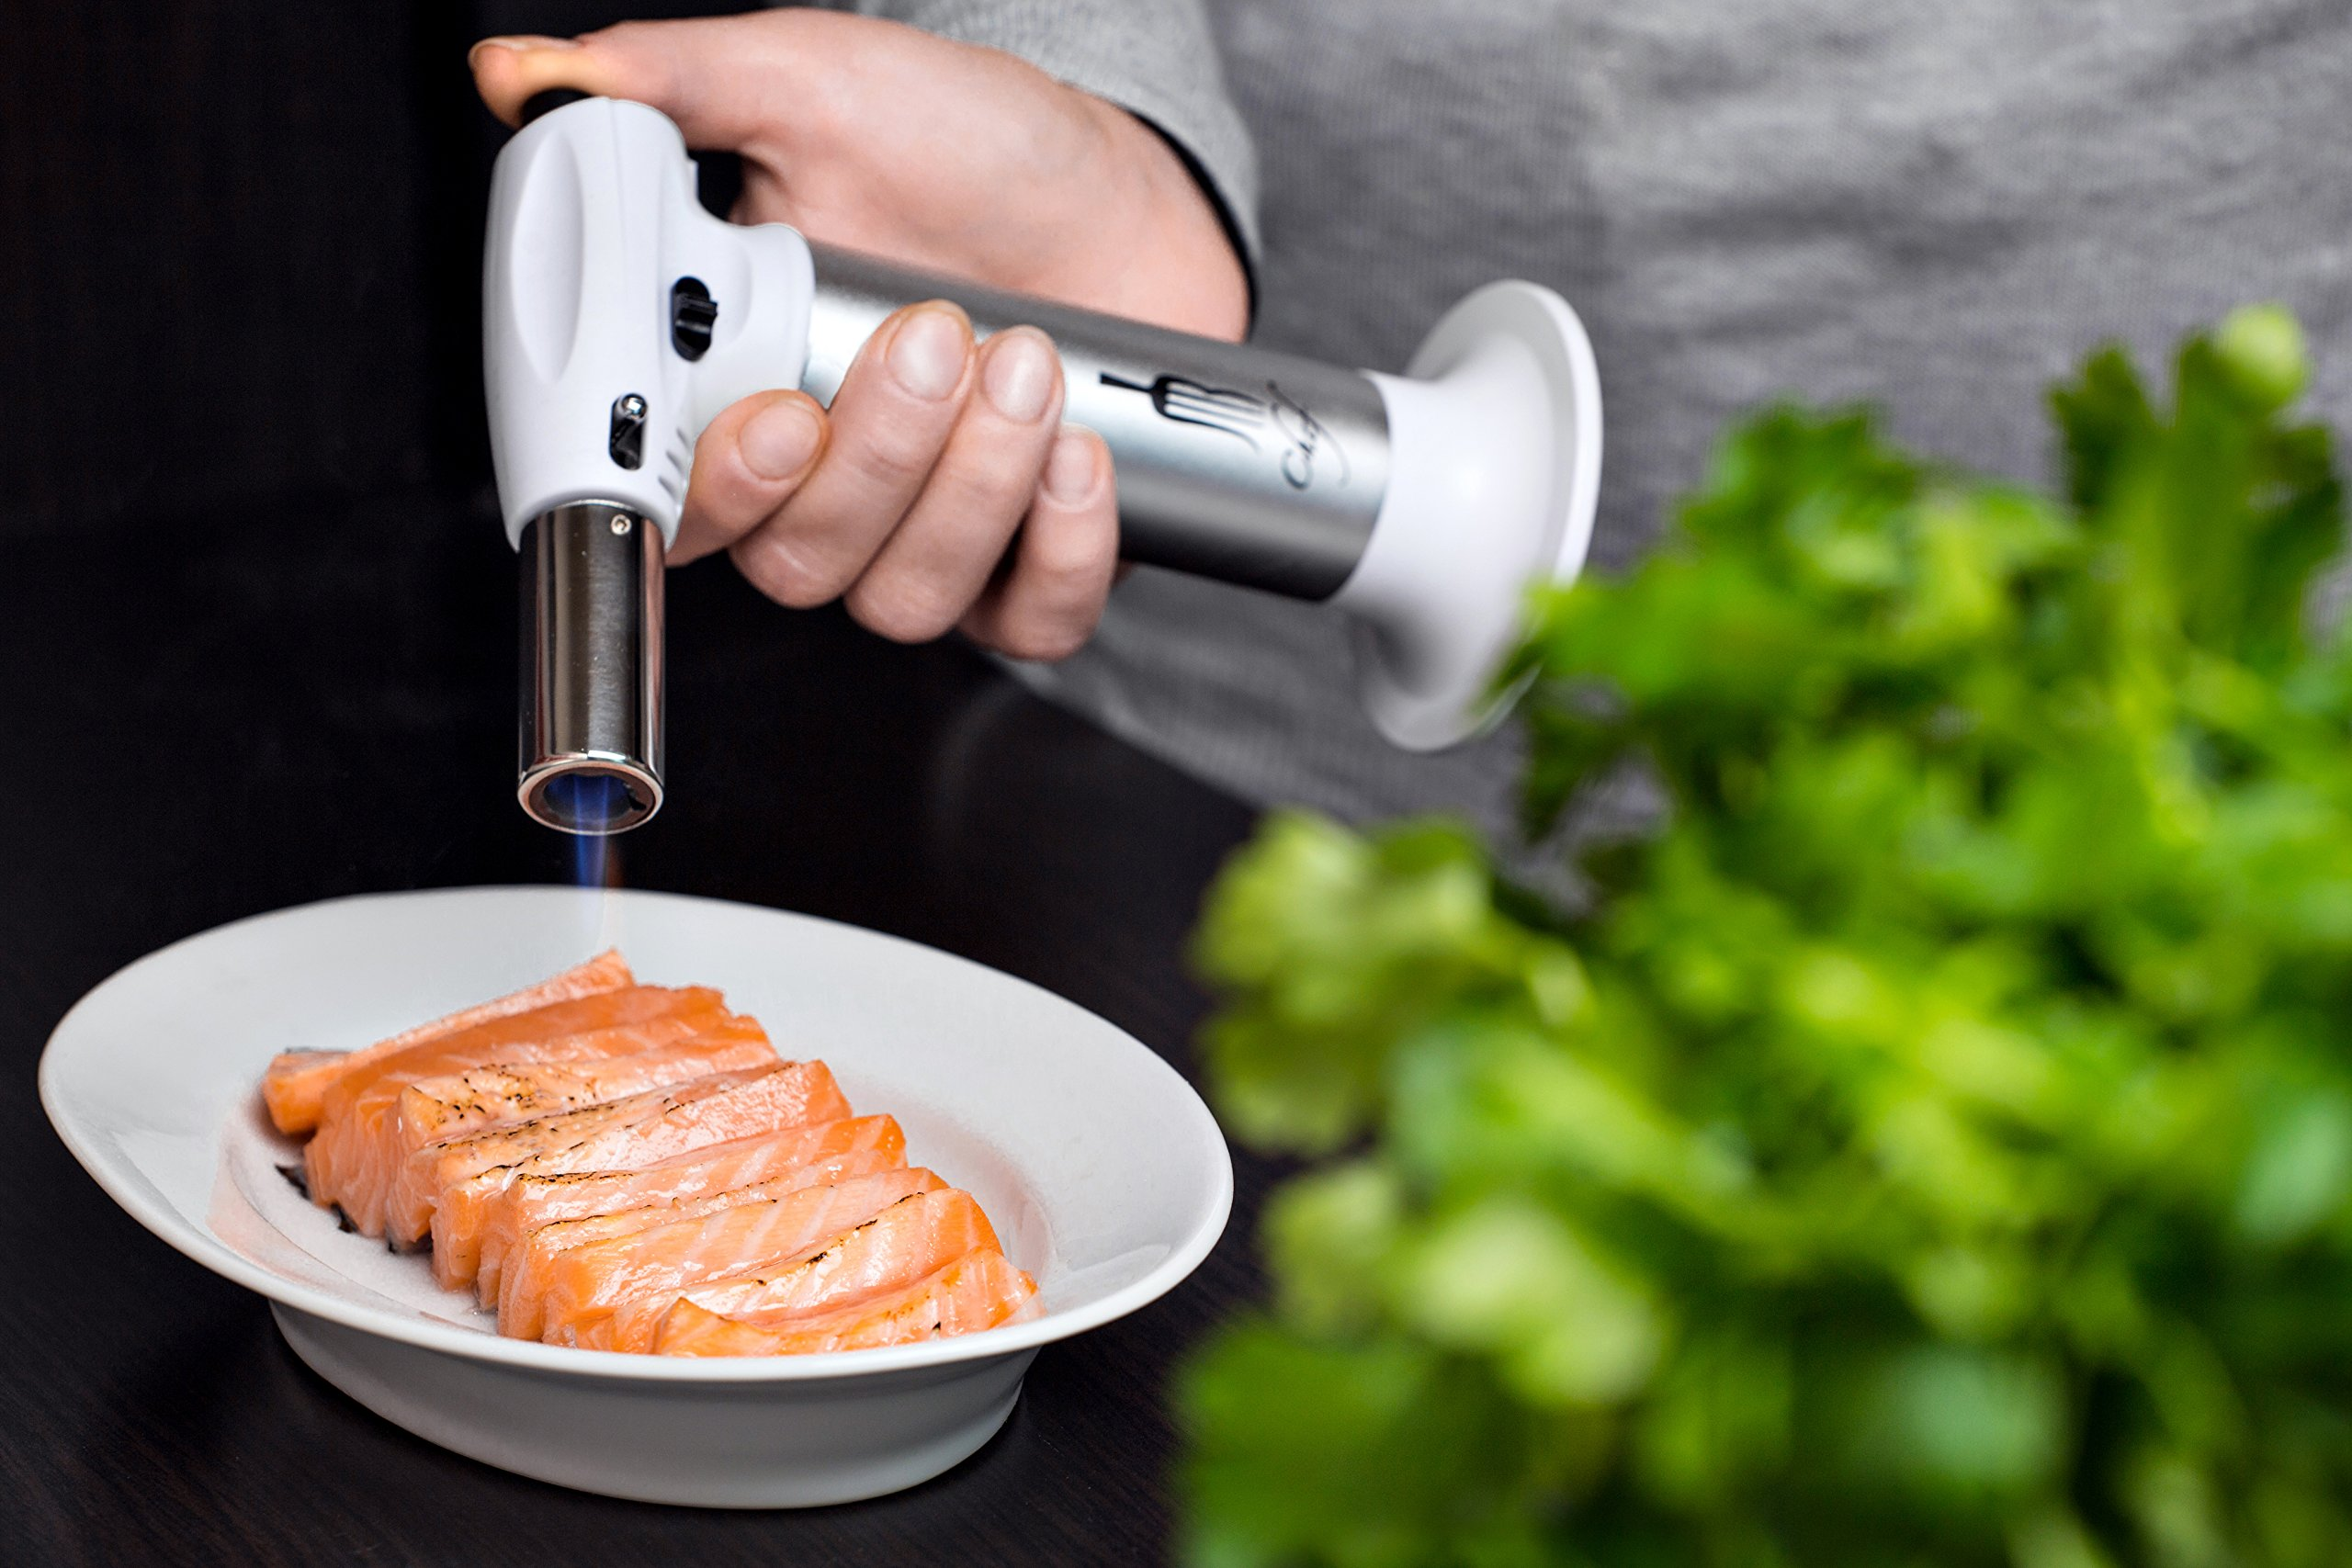 JB Chef Culinary Micro Butane Torch | Mini Torch Lighter Cooking Kitchen Blow Torch With Safety Lock & Adjustable Flame | Small Cigar Torch Lighter For Crème Brûlée, Soldering, Welding Torch & More by JB Chef (Image #5)